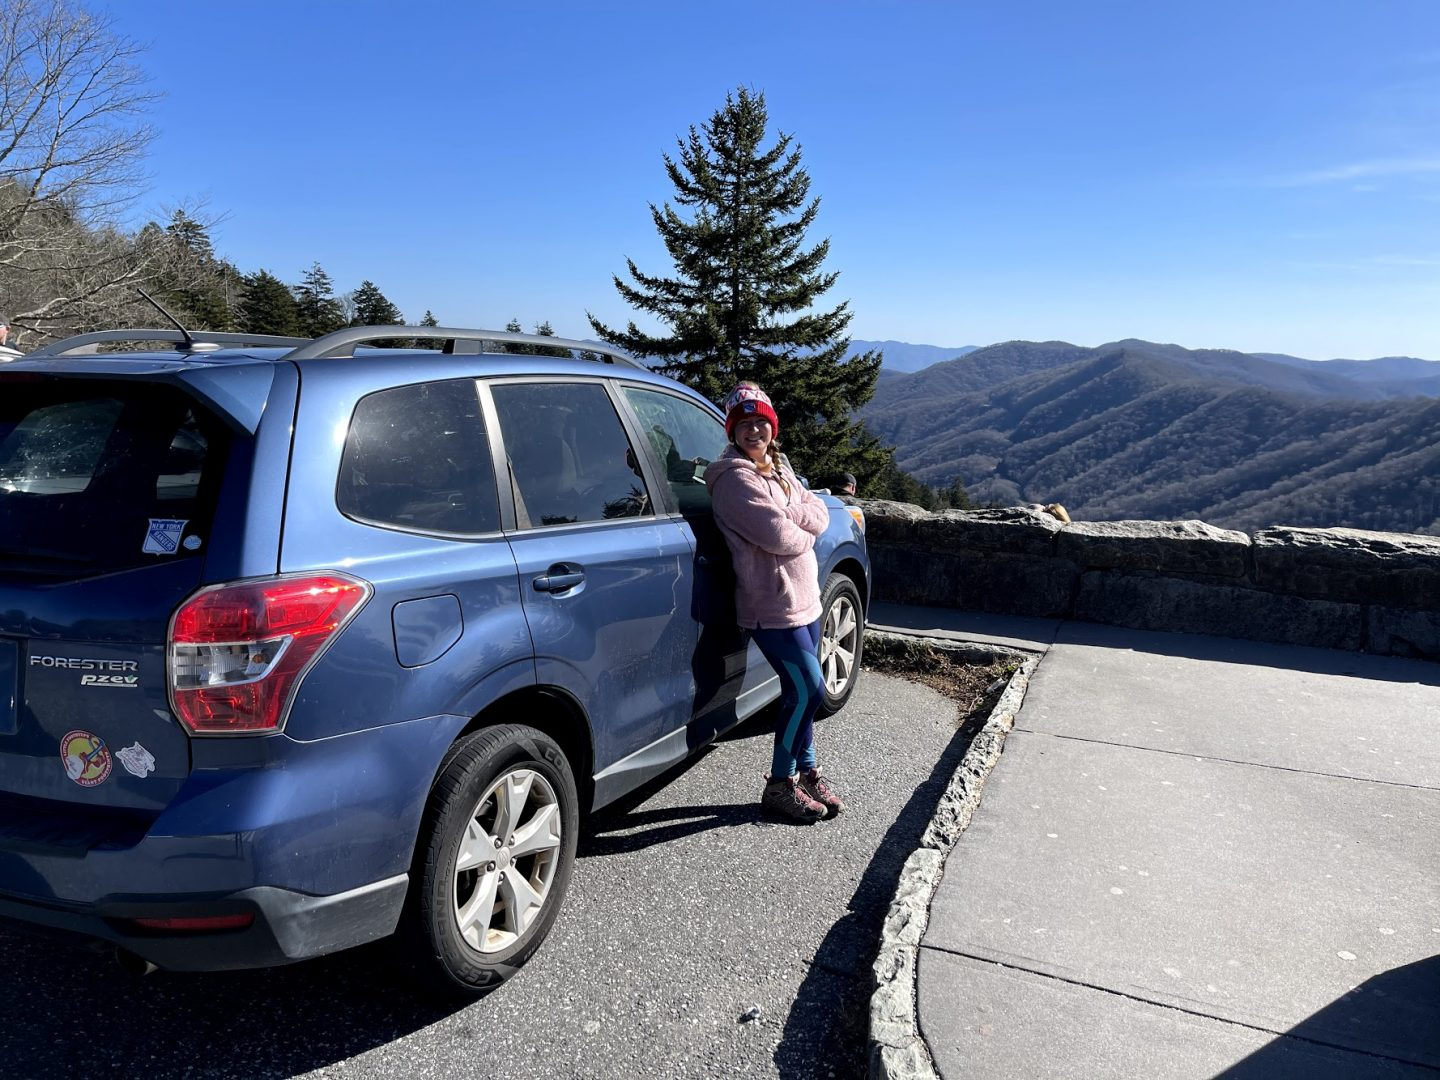 Road trip in my Subaru through the budget travel Smoky Mountains vacation